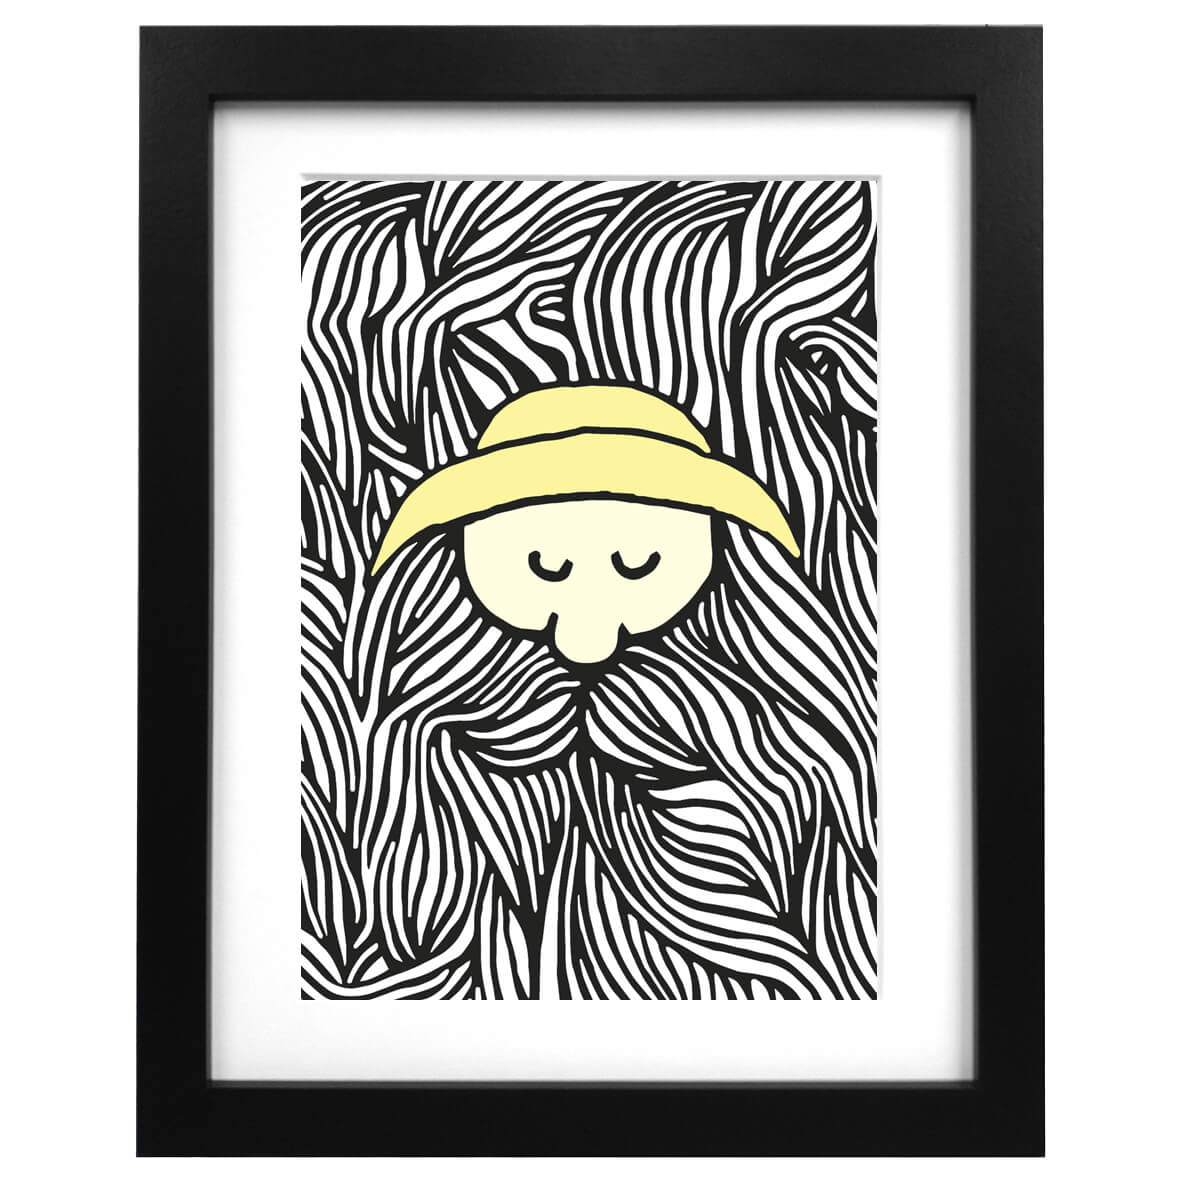 A3 art print with an illustration of a fisherman with a huge beard